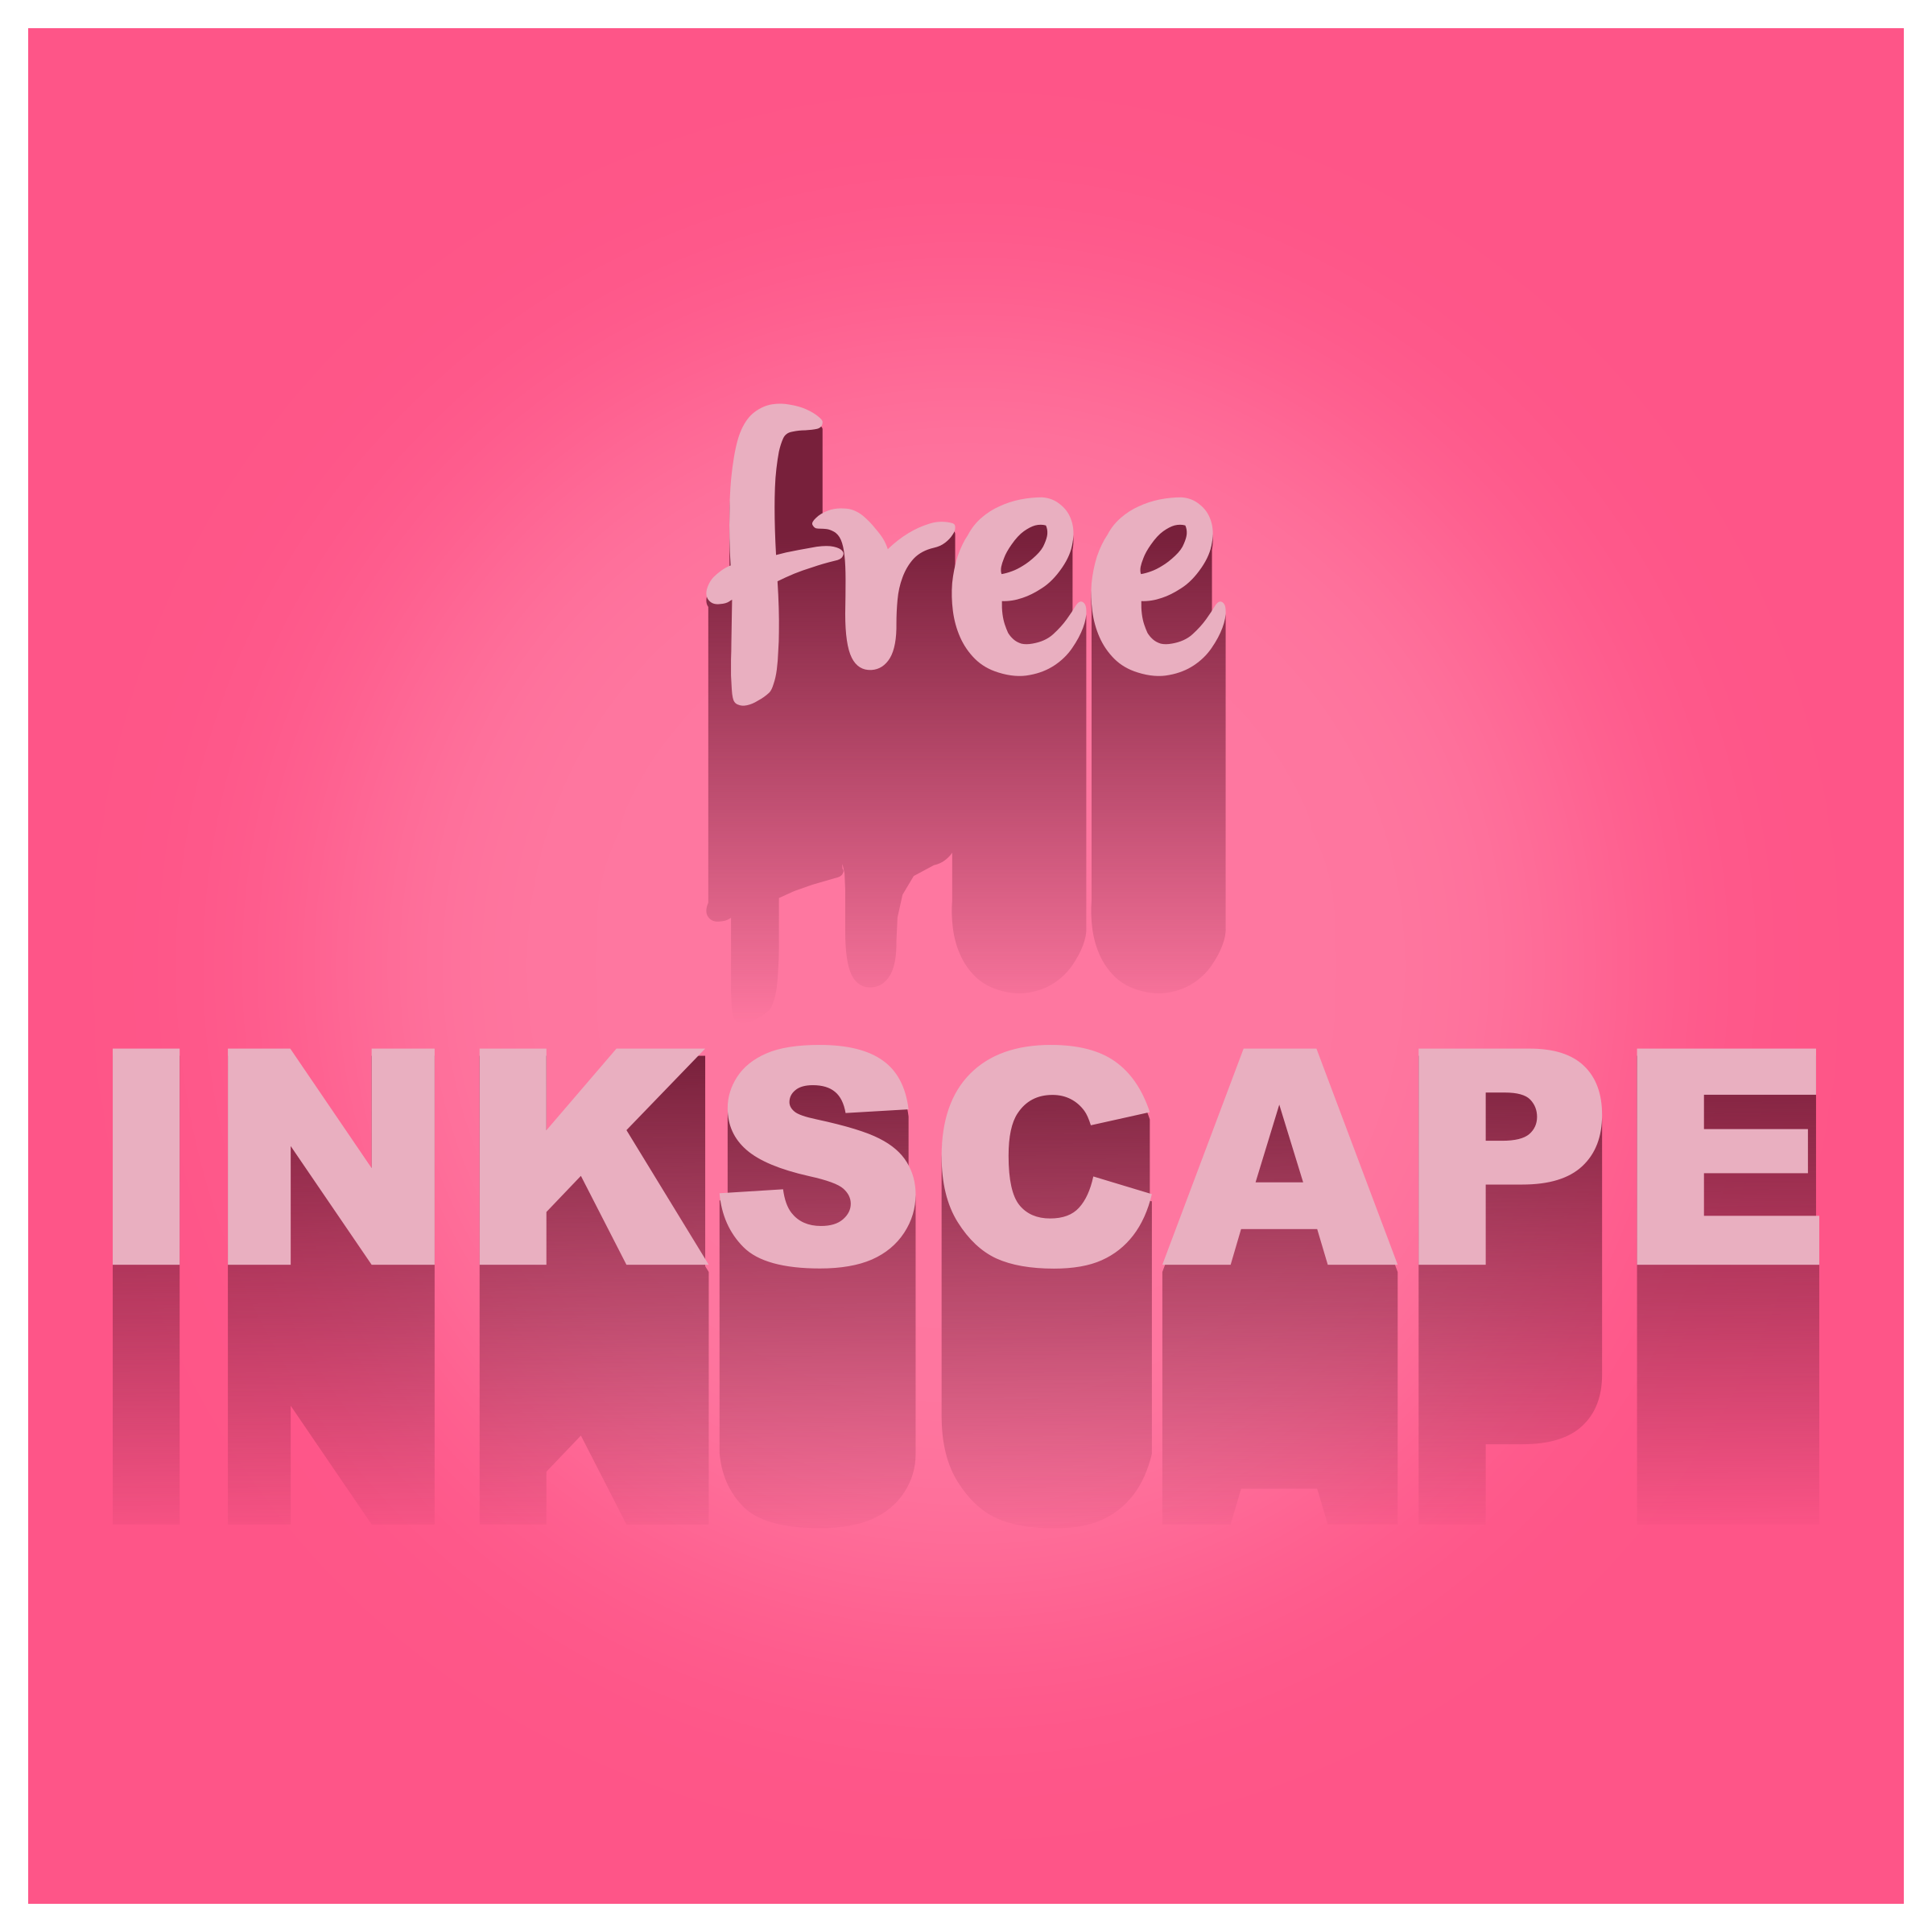 Free Inkscape #2 by Almeidah